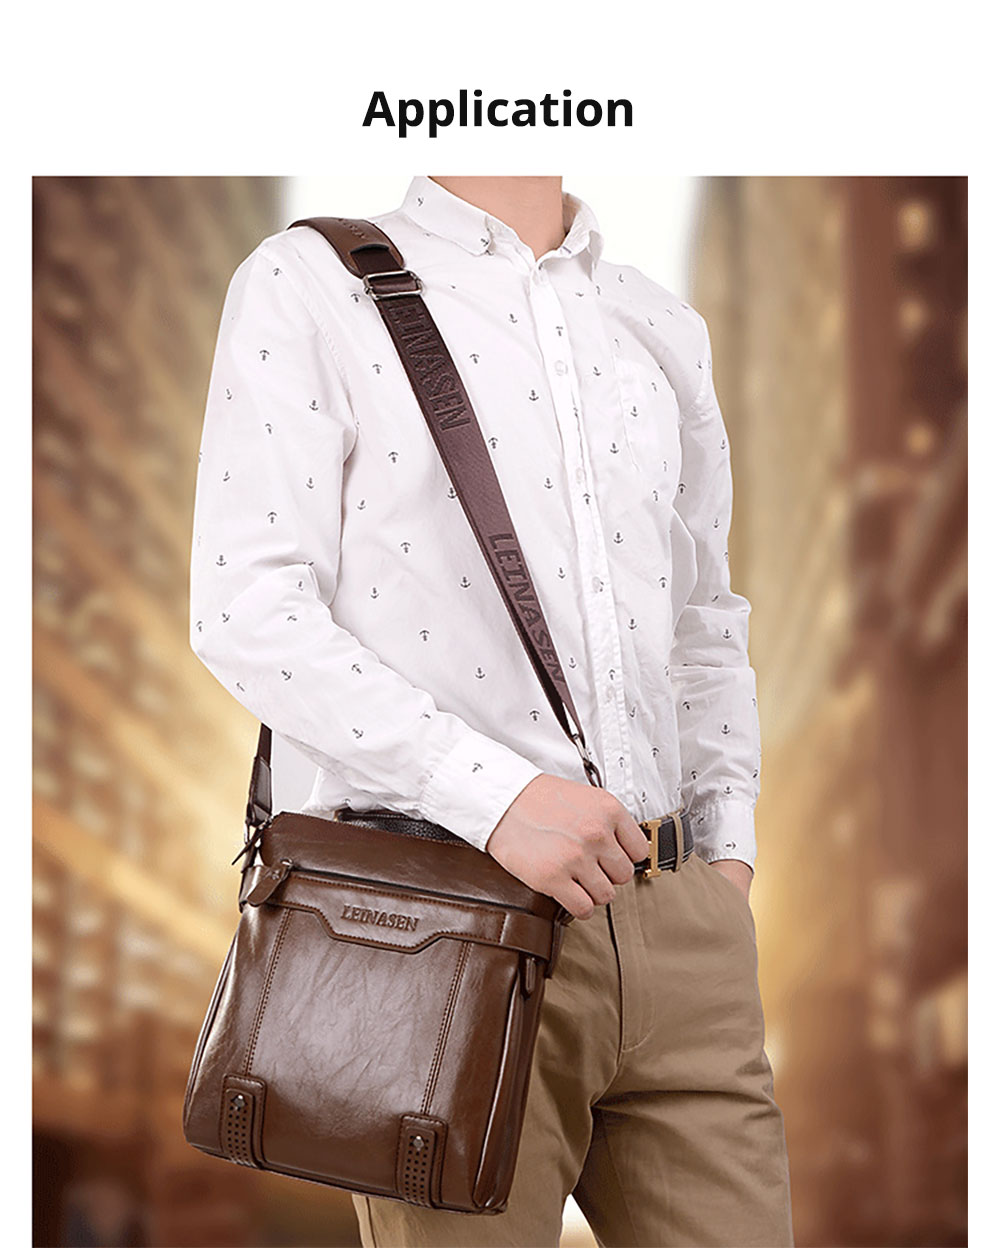 Business Man Leather Shoulder Bag Luxurious Briefcase, Multipurpose Large Capacity Men's Handbag with Clutch Widen Strap Multiple Compartments 14